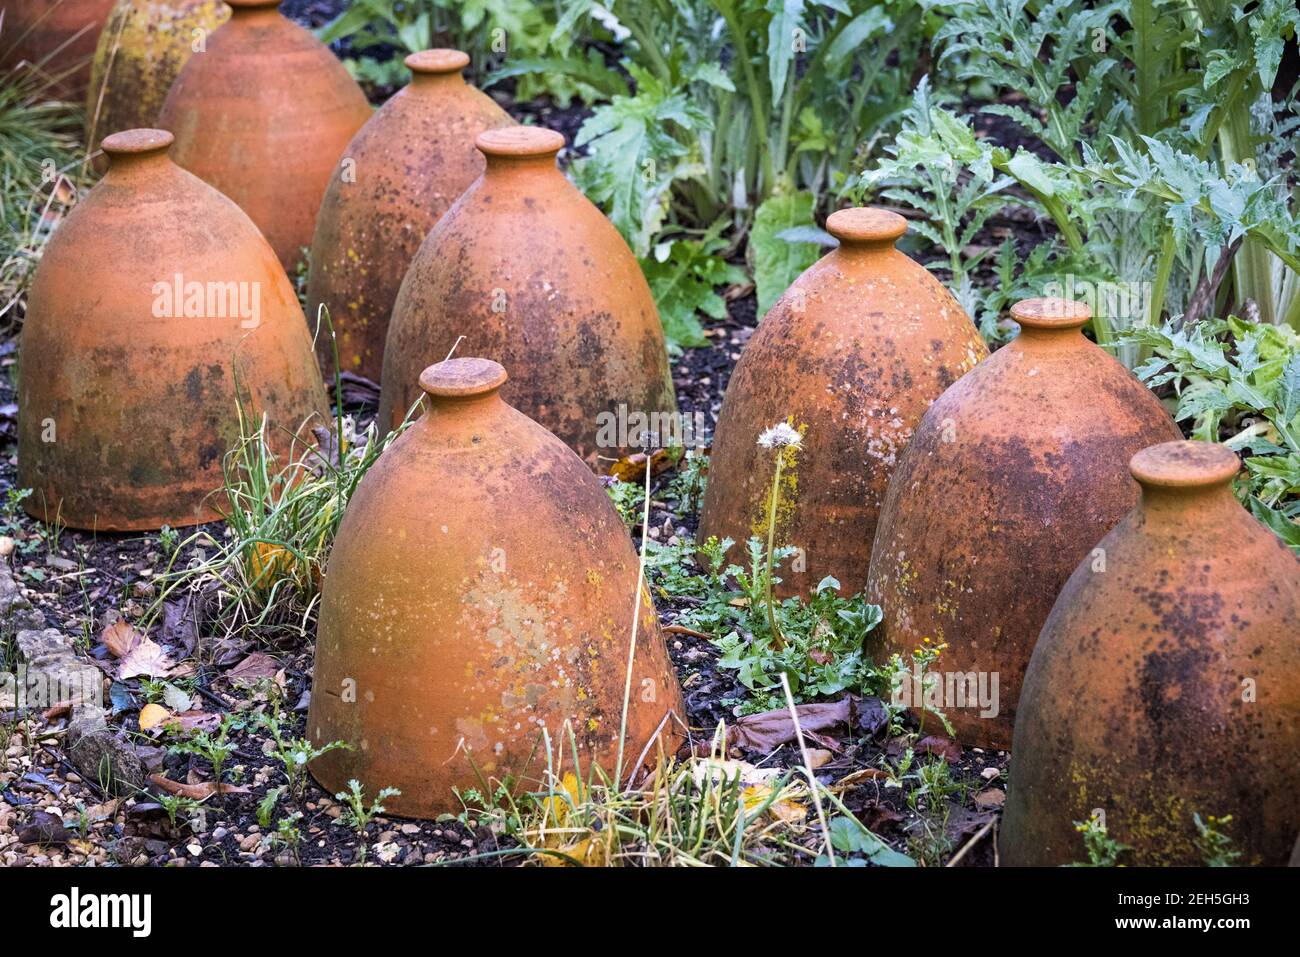 Clay Pots Upside Down High Resolution Stock Photography And Images Alamy